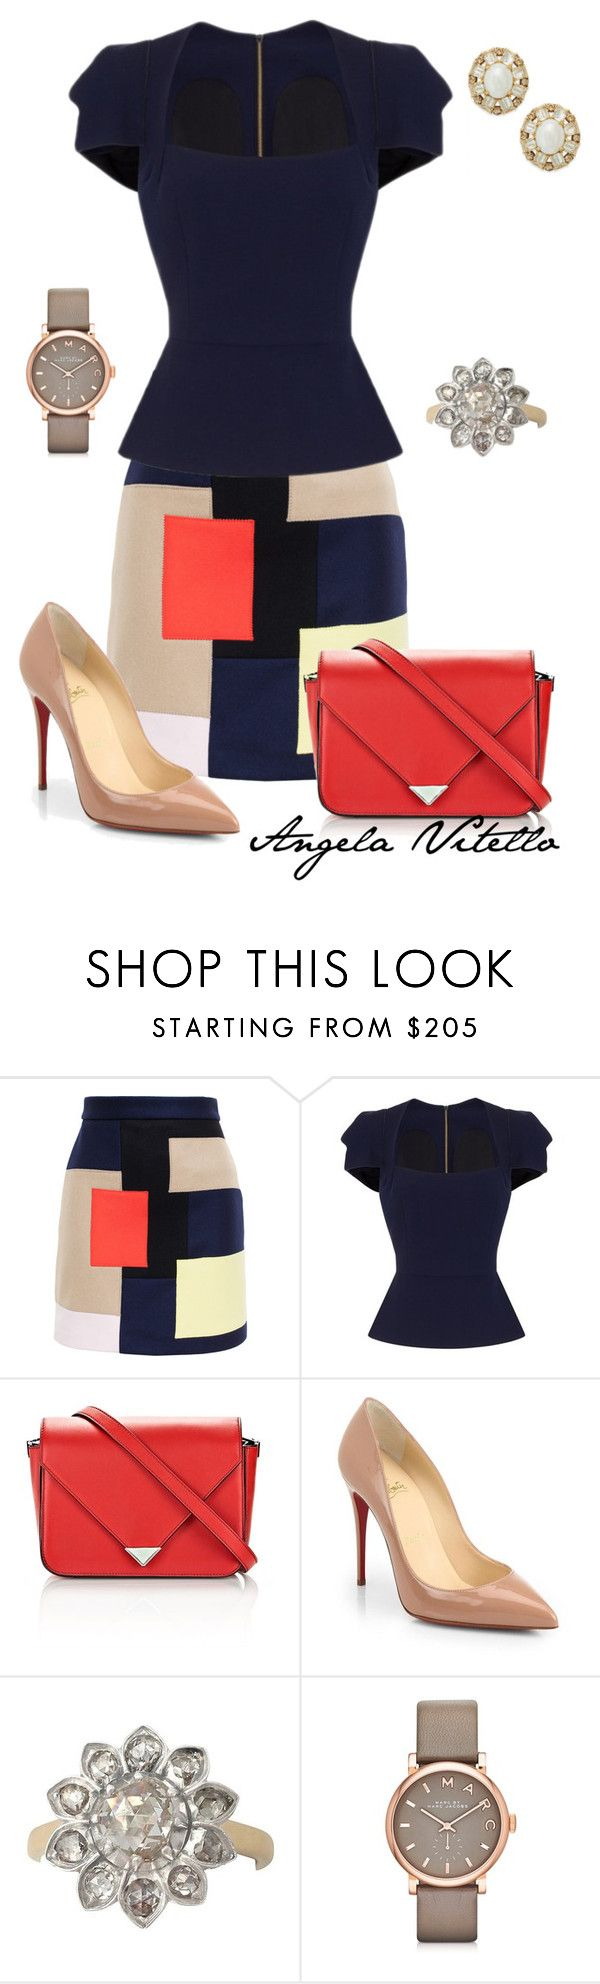 """""""Untitled #613"""" by angela-vitello on Polyvore featuring MSGM, Roland Mouret, Alexander Wang, Christian Louboutin, Marc by Marc Jacobs and Kate Spade"""